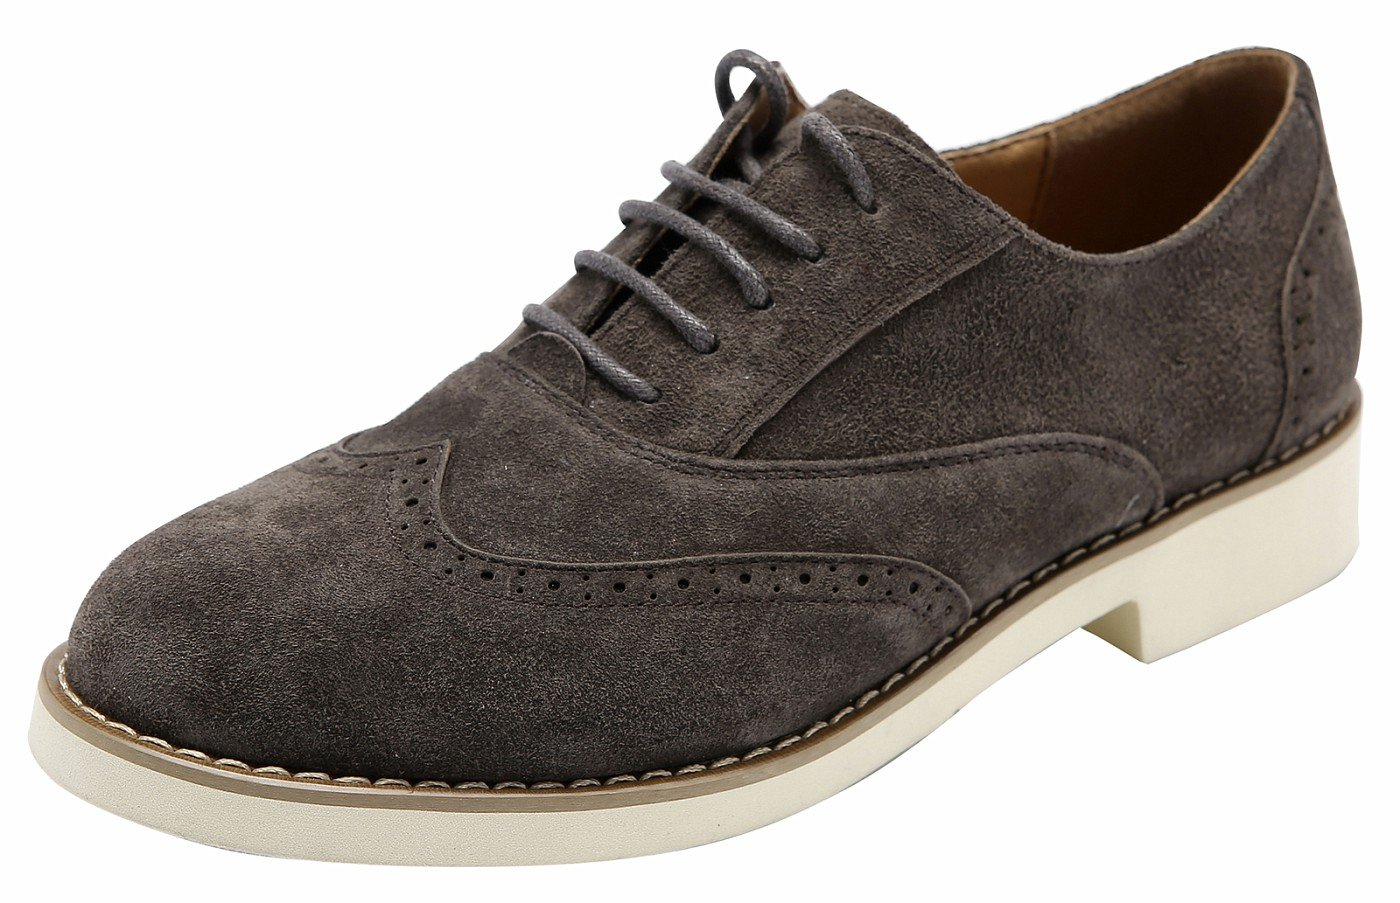 Ulite Girls Solid Color Perforated Suede Leather Lace-up Low Heel Oxfords, Comfortable Casual Walking Oxfords gry9